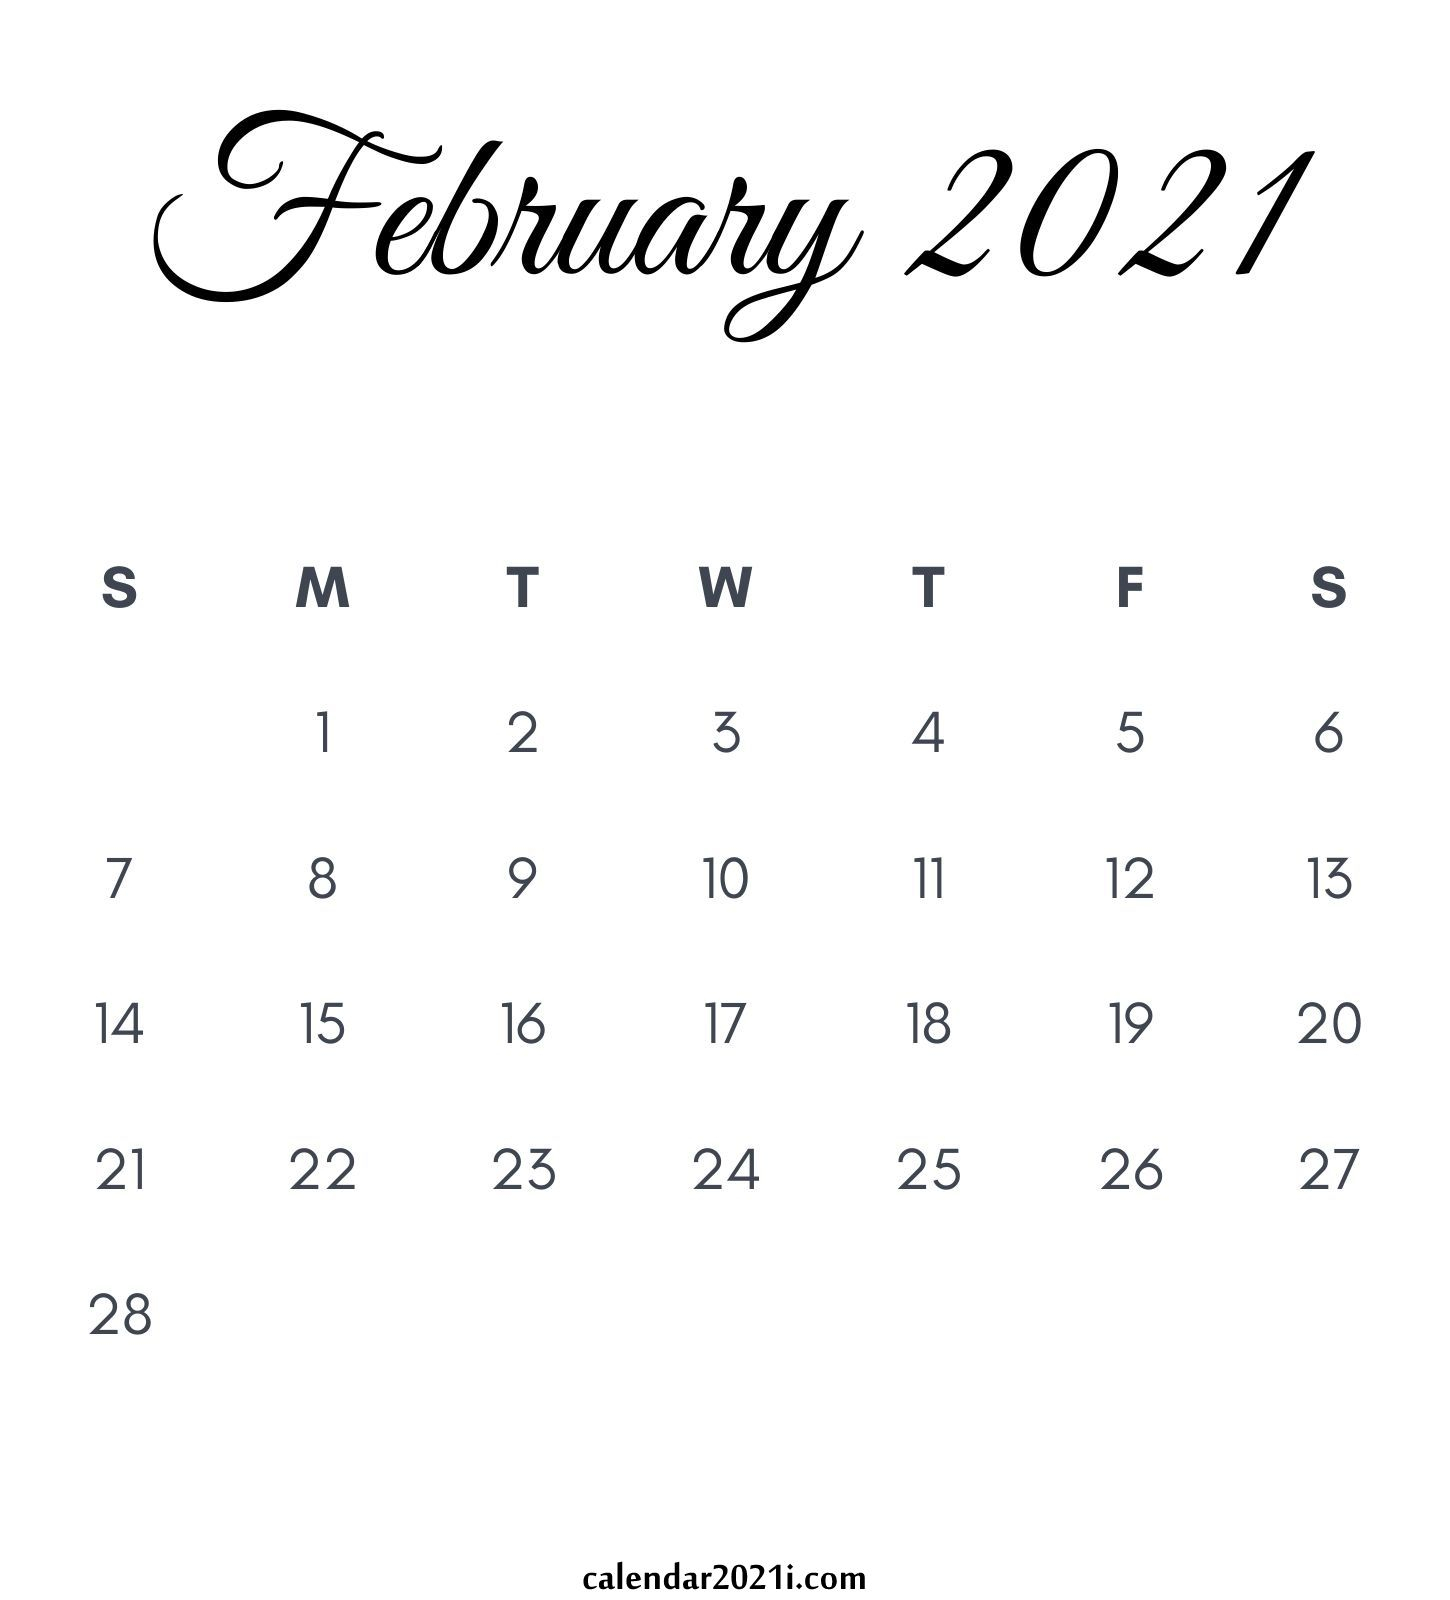 2021 Calendar Monthly Printable | Calendar 2021 intended for 2021-2021 Monthly Planner: 2 Years